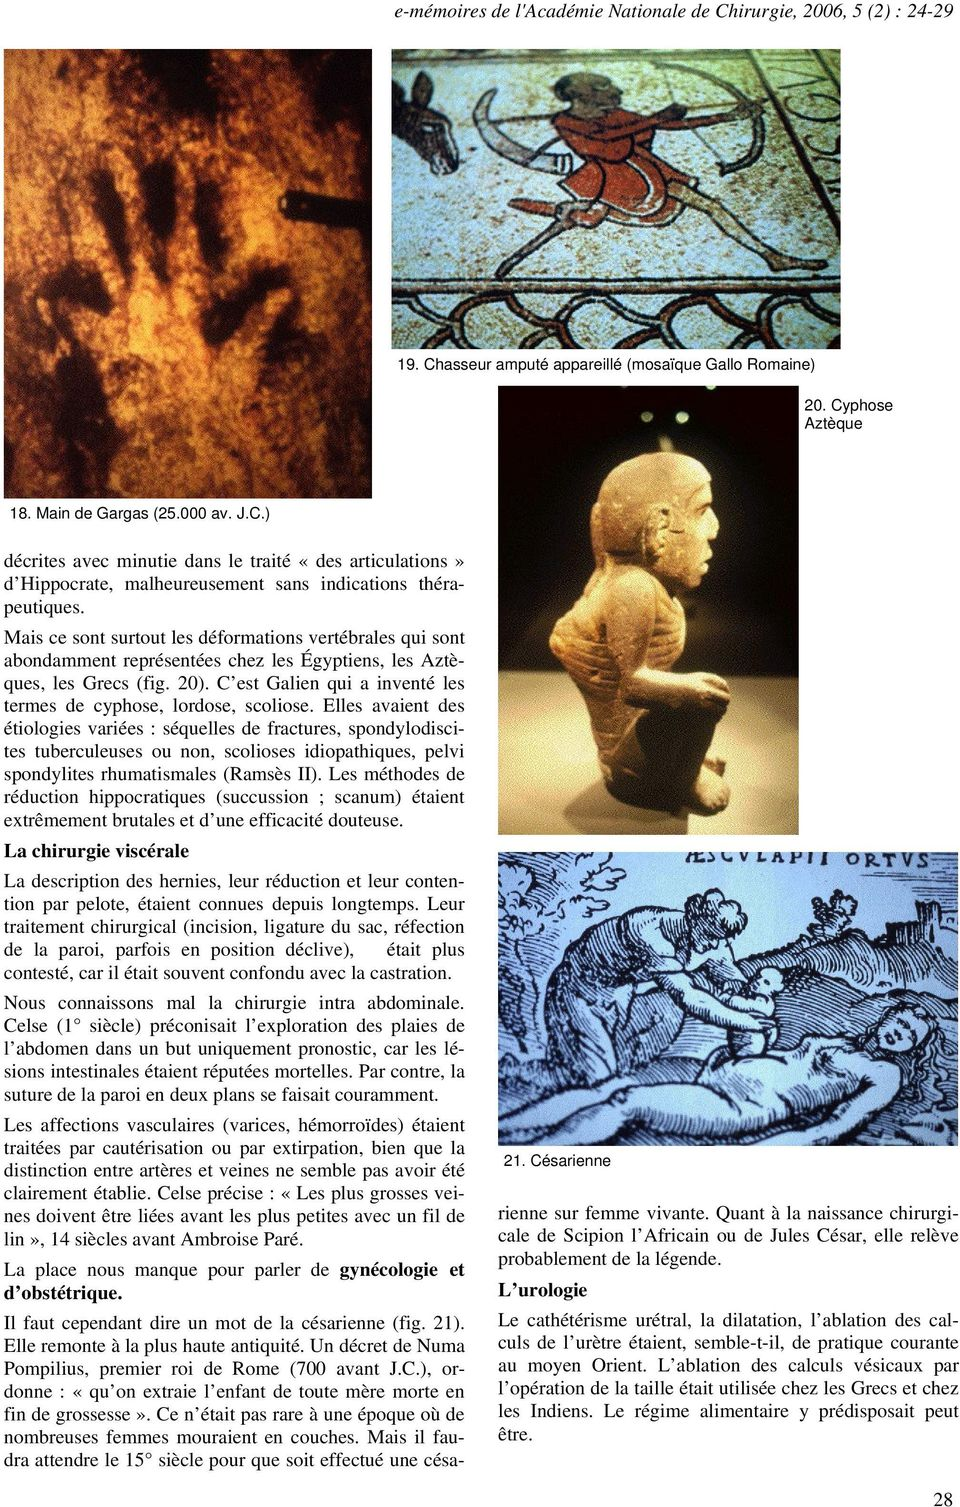 La chirurgie des civilisations disparues - PDF